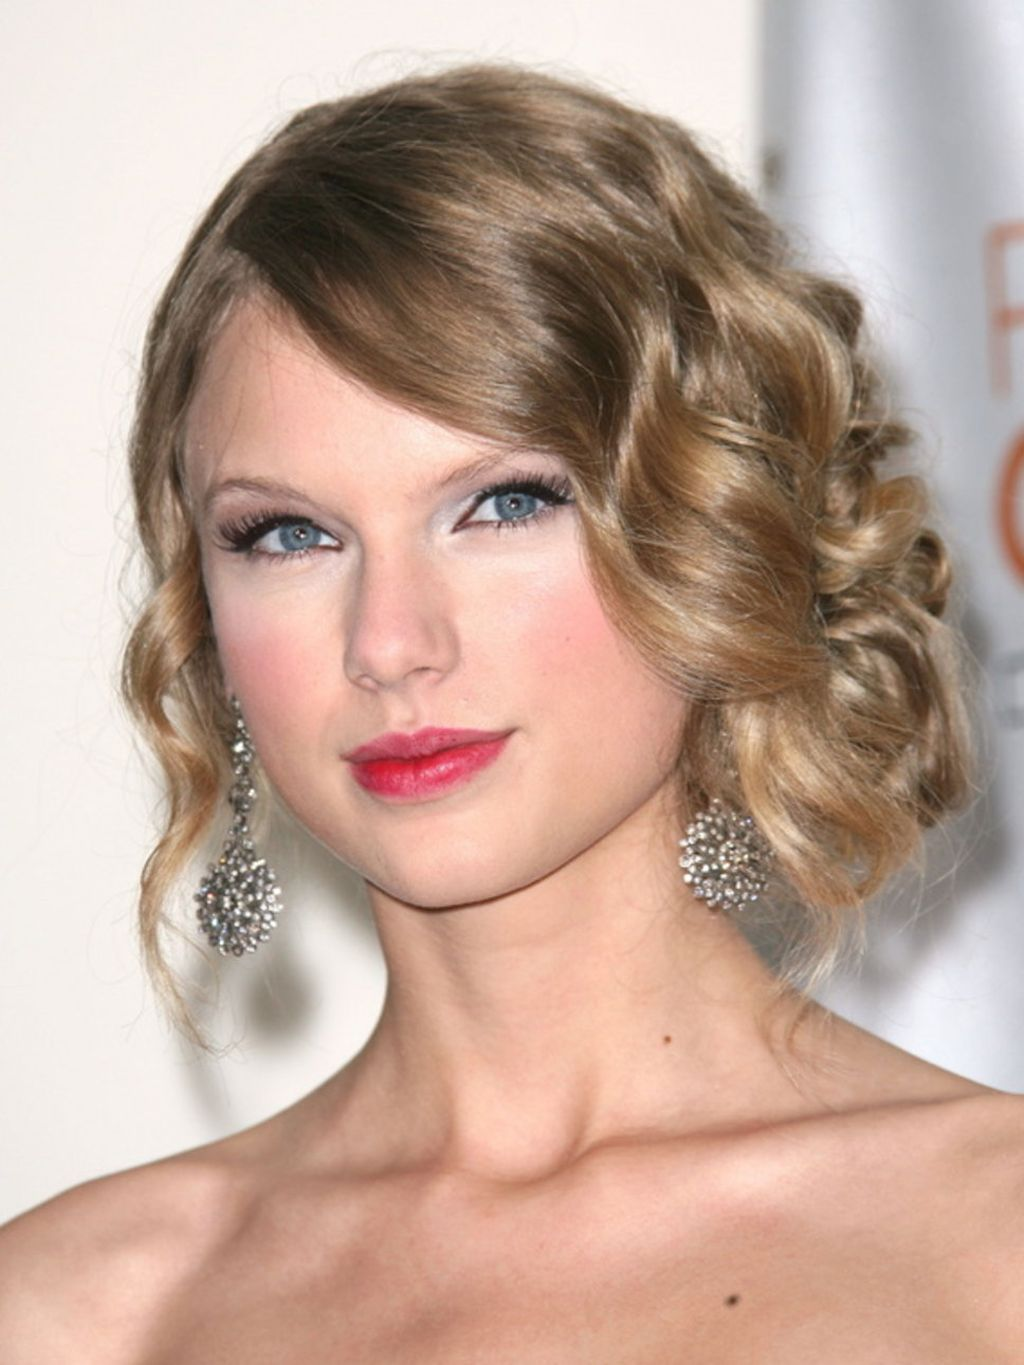 Vintage Curly Hairstyles That Are Really Timeless Fave Hairstyles Wedding Hairstyles For Medium Hair Womens Hairstyles Medium Hair Styles